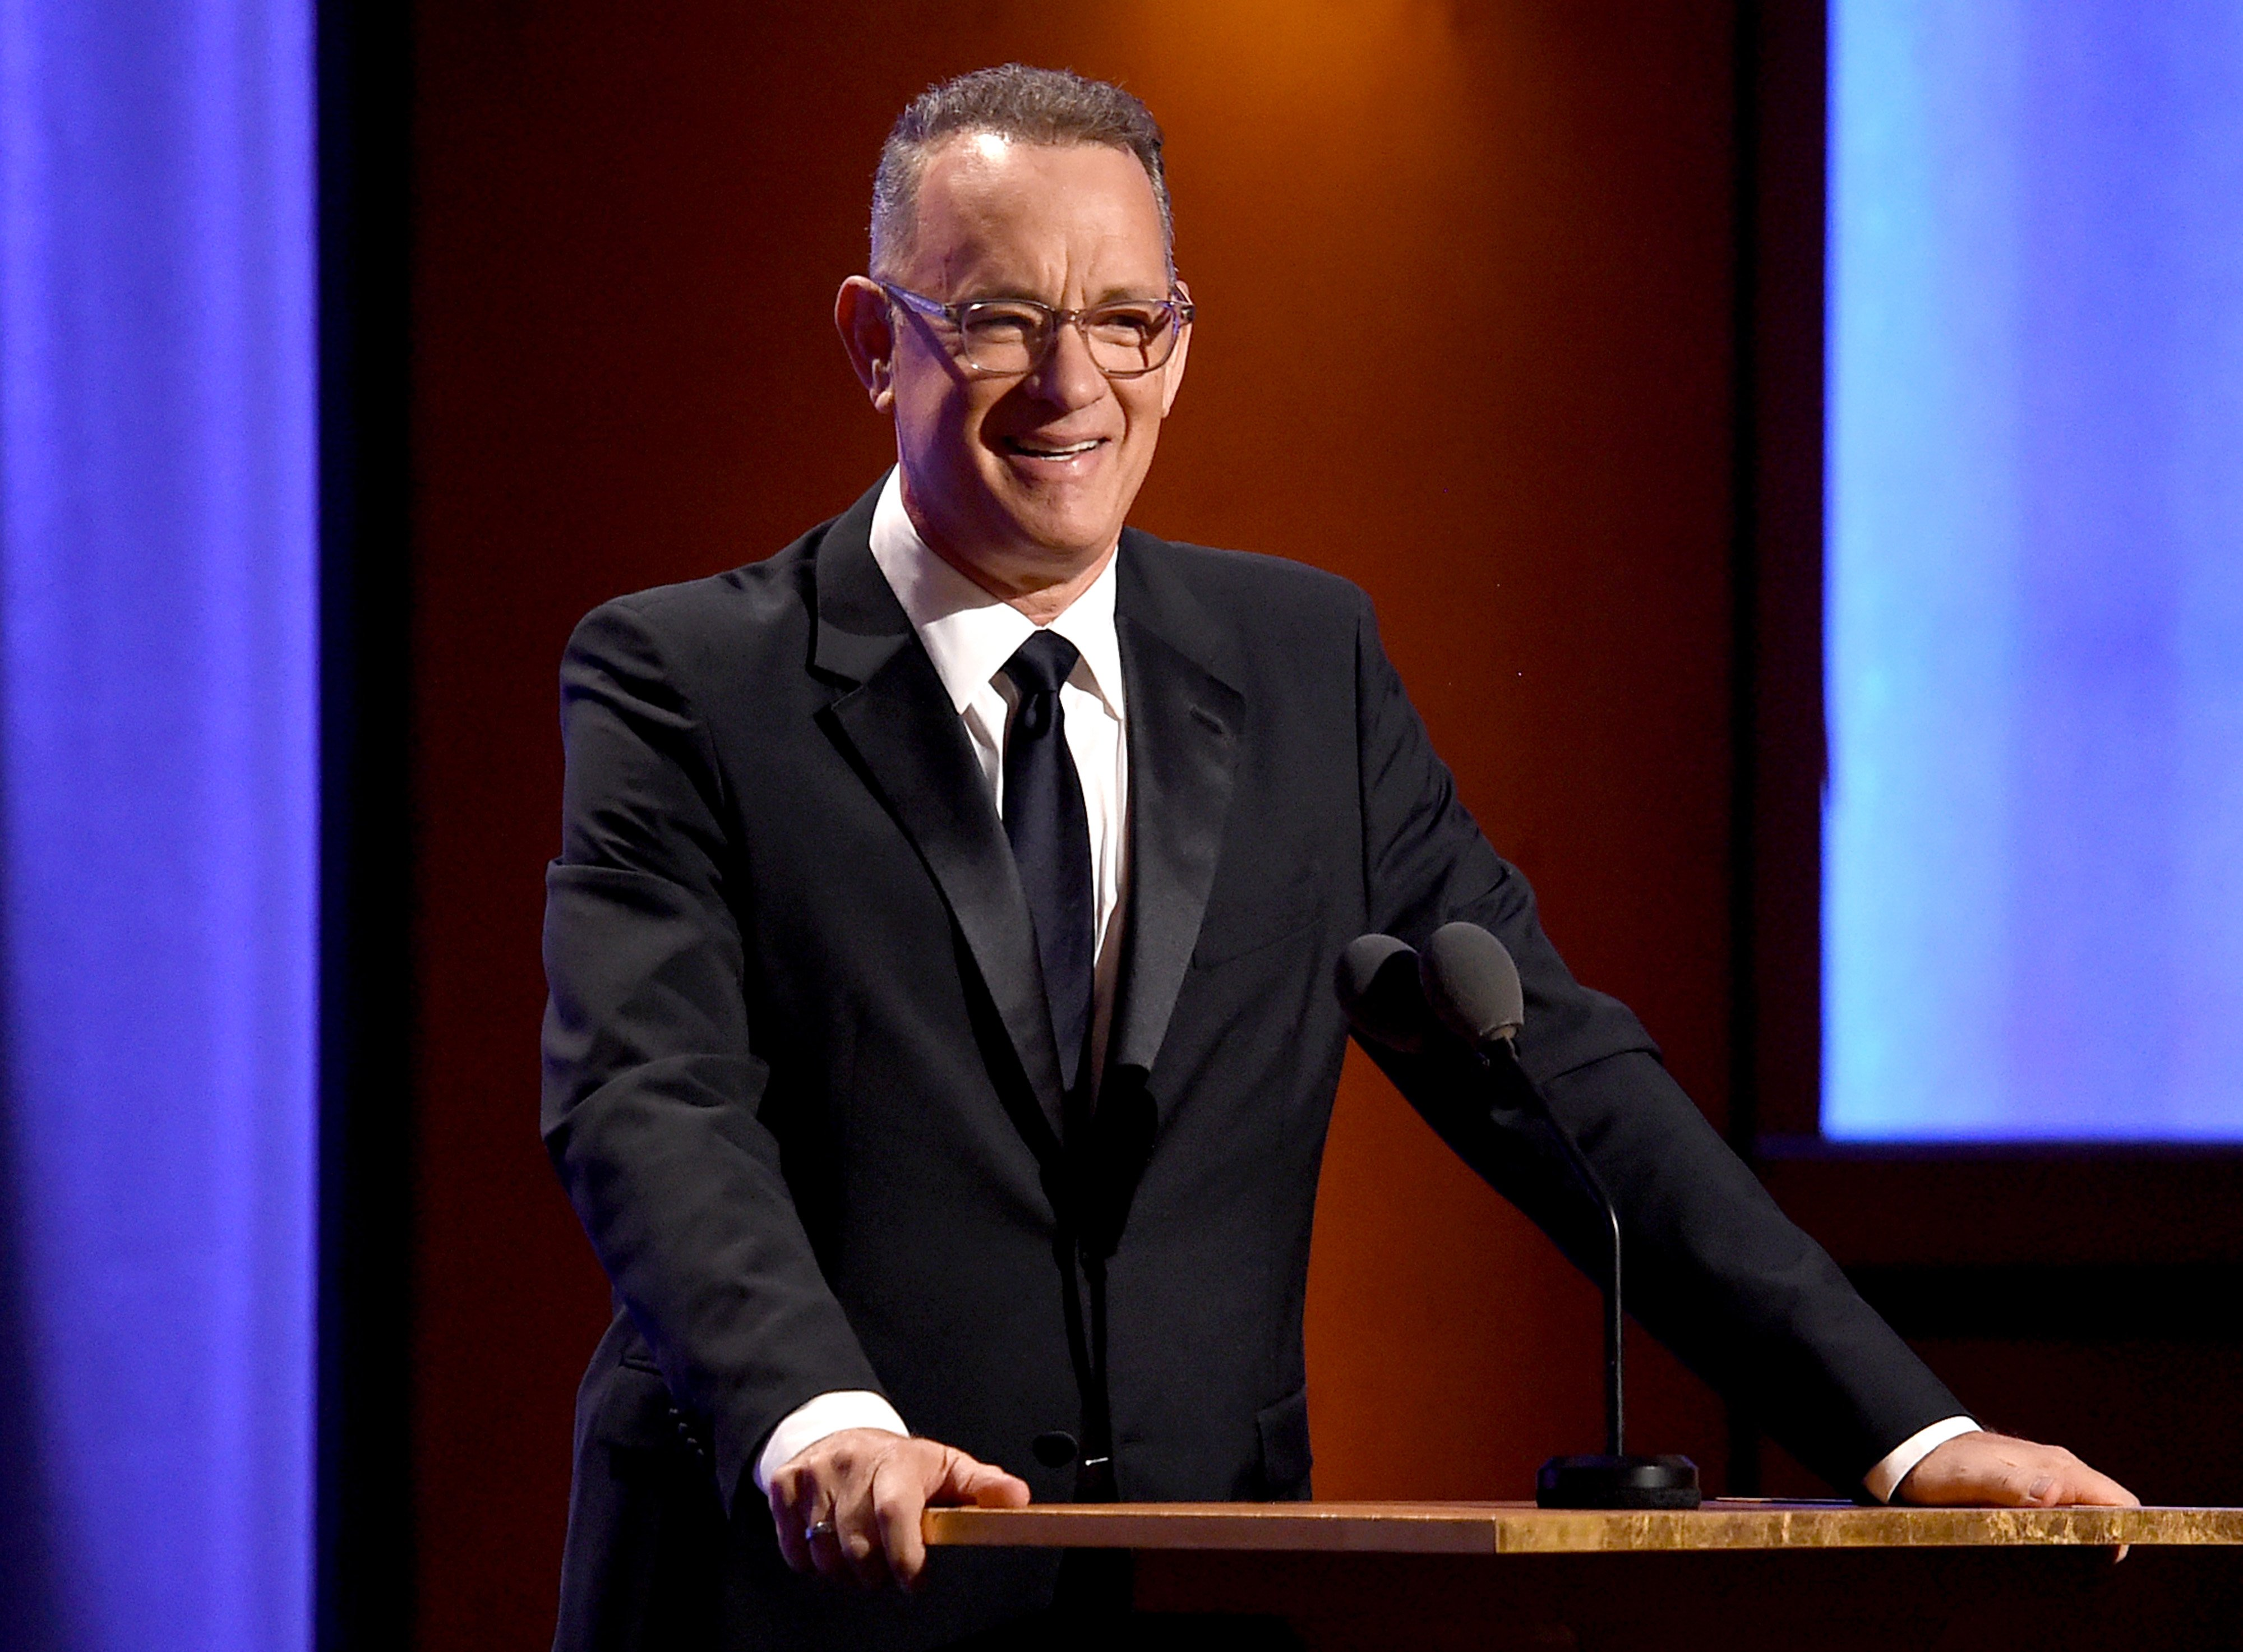 Tom Hanks speaks onstage during the Academy of Motion Picture Arts and Sciences' 10th annual Governors Awards at The Ray Dolby Ballroom at Hollywood & Highland Center on November 18, 2018 in Hollywood, California. | Source: Getty Images